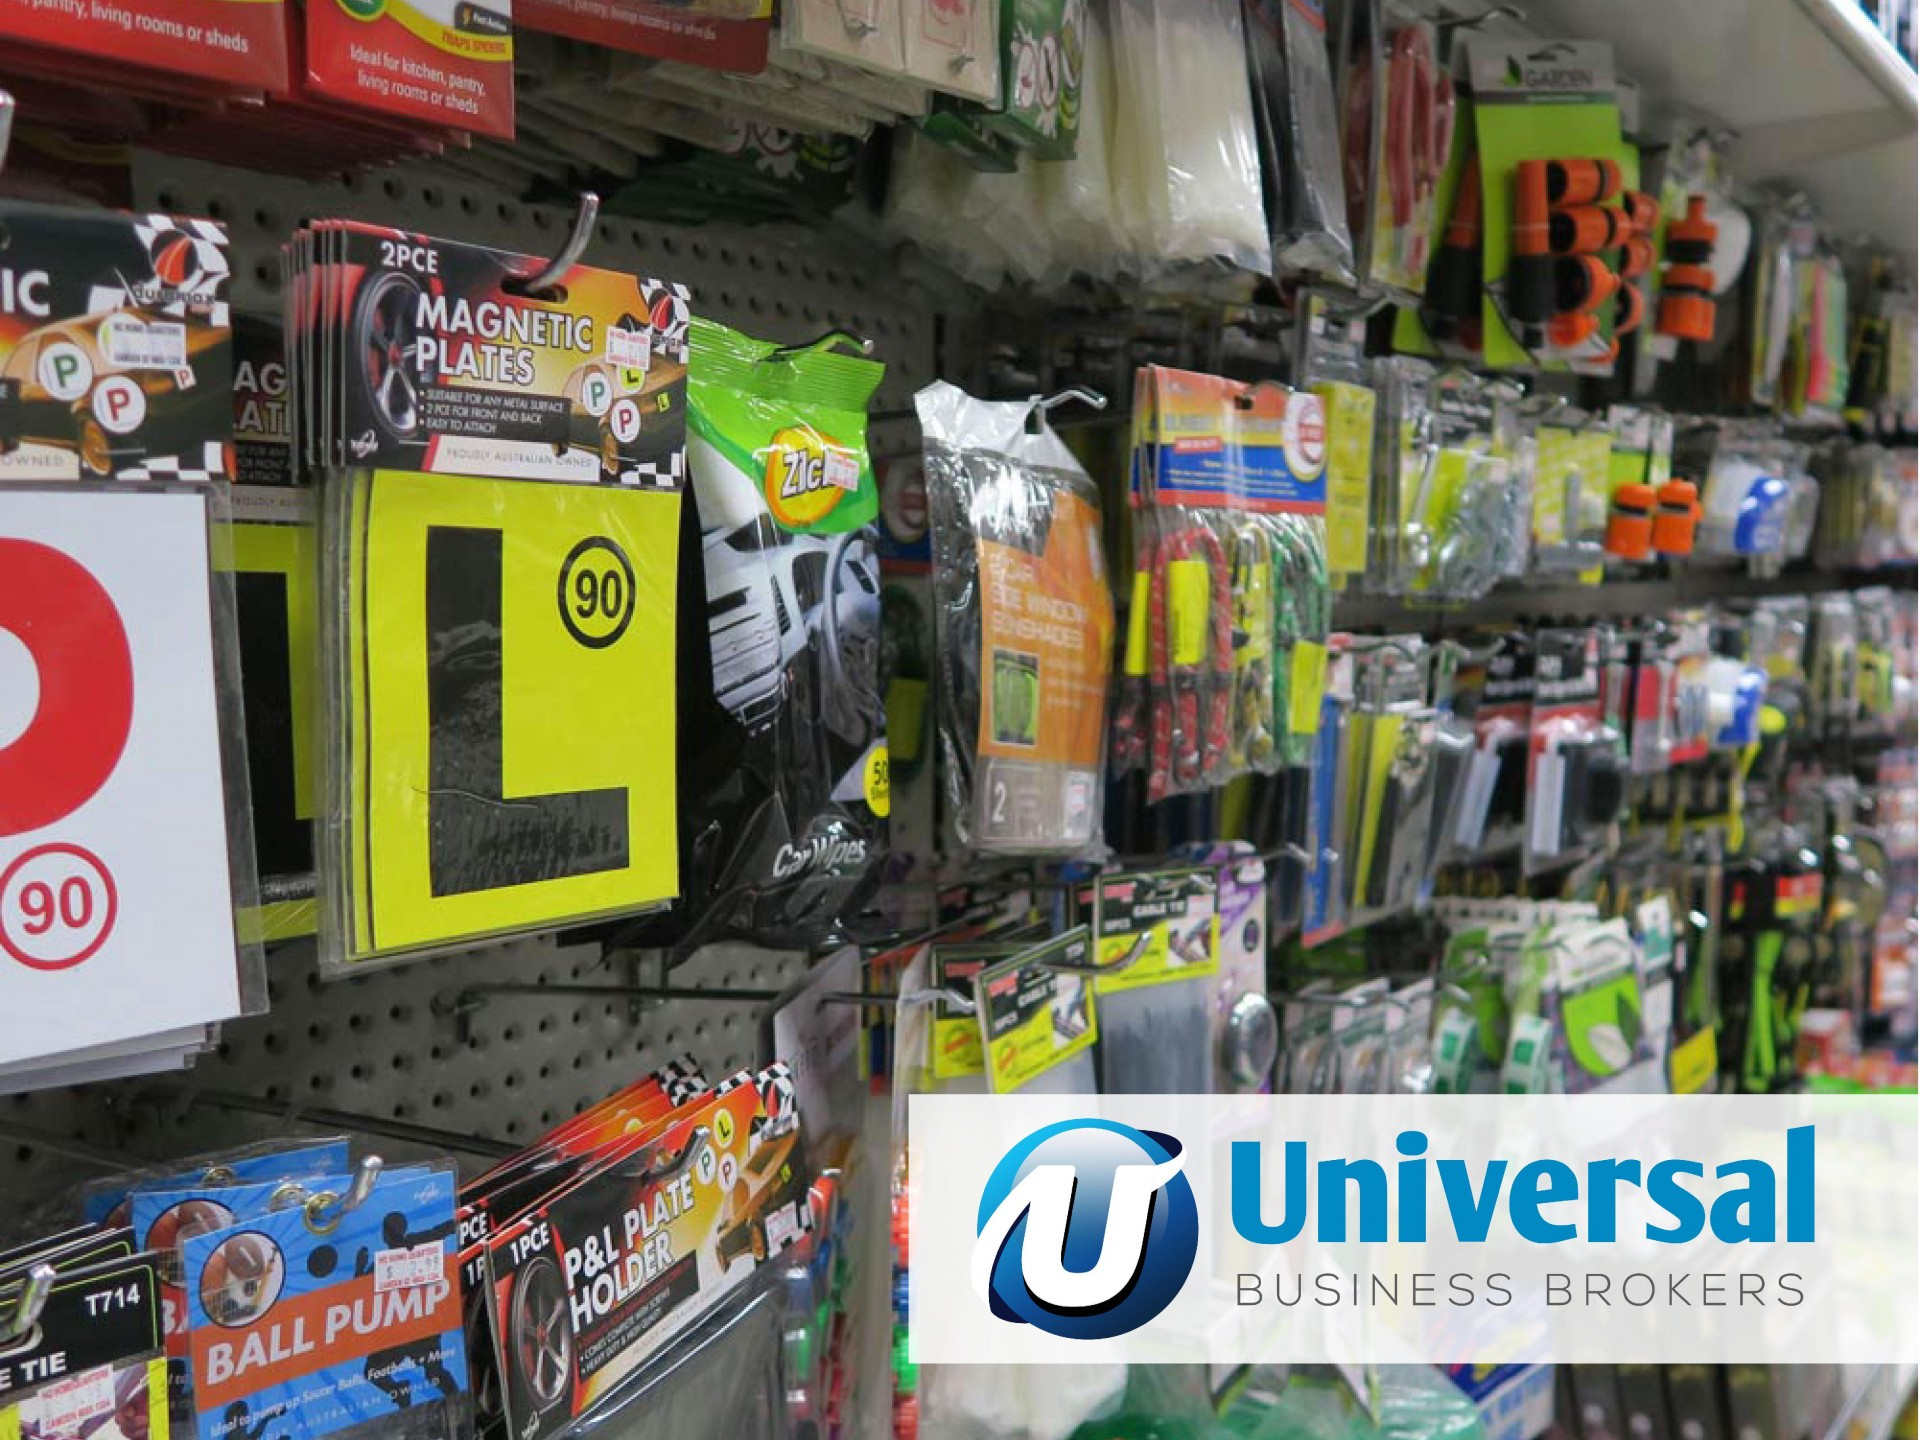 Discount and Giftware Shop for sale in the Sutherland Shire